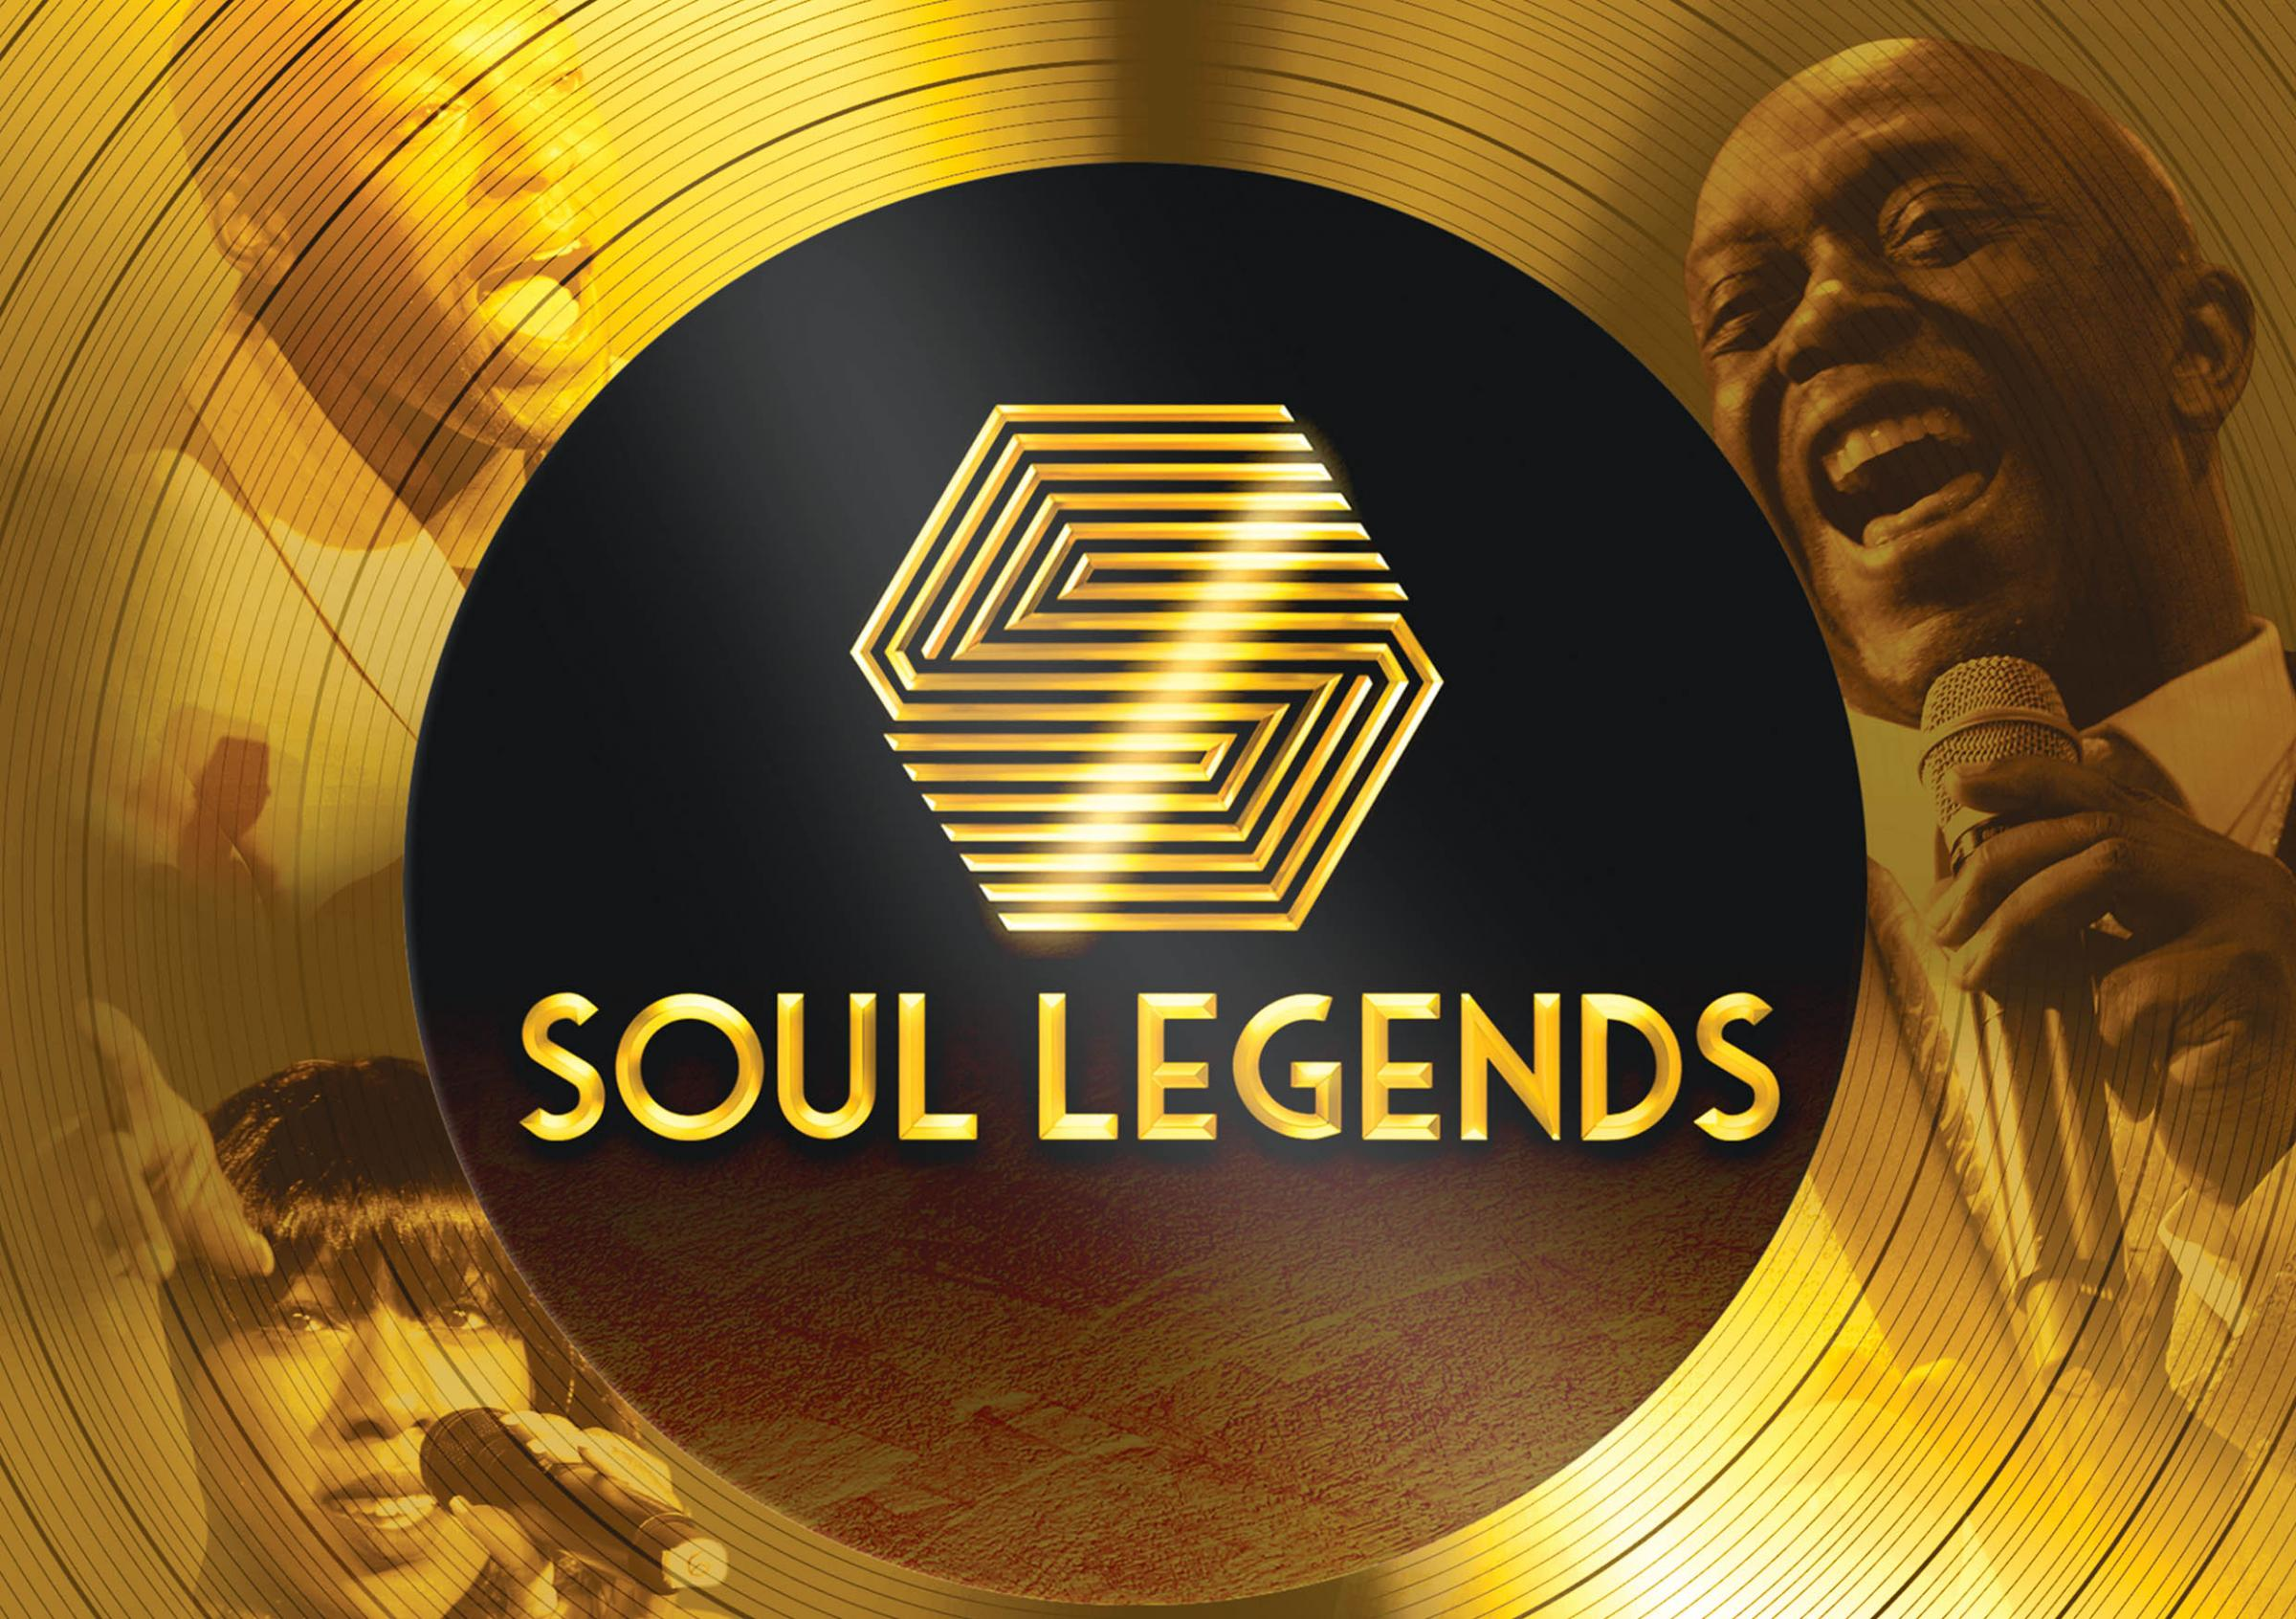 Soul Legends – Feel the heart - Share the soul - Live the legends